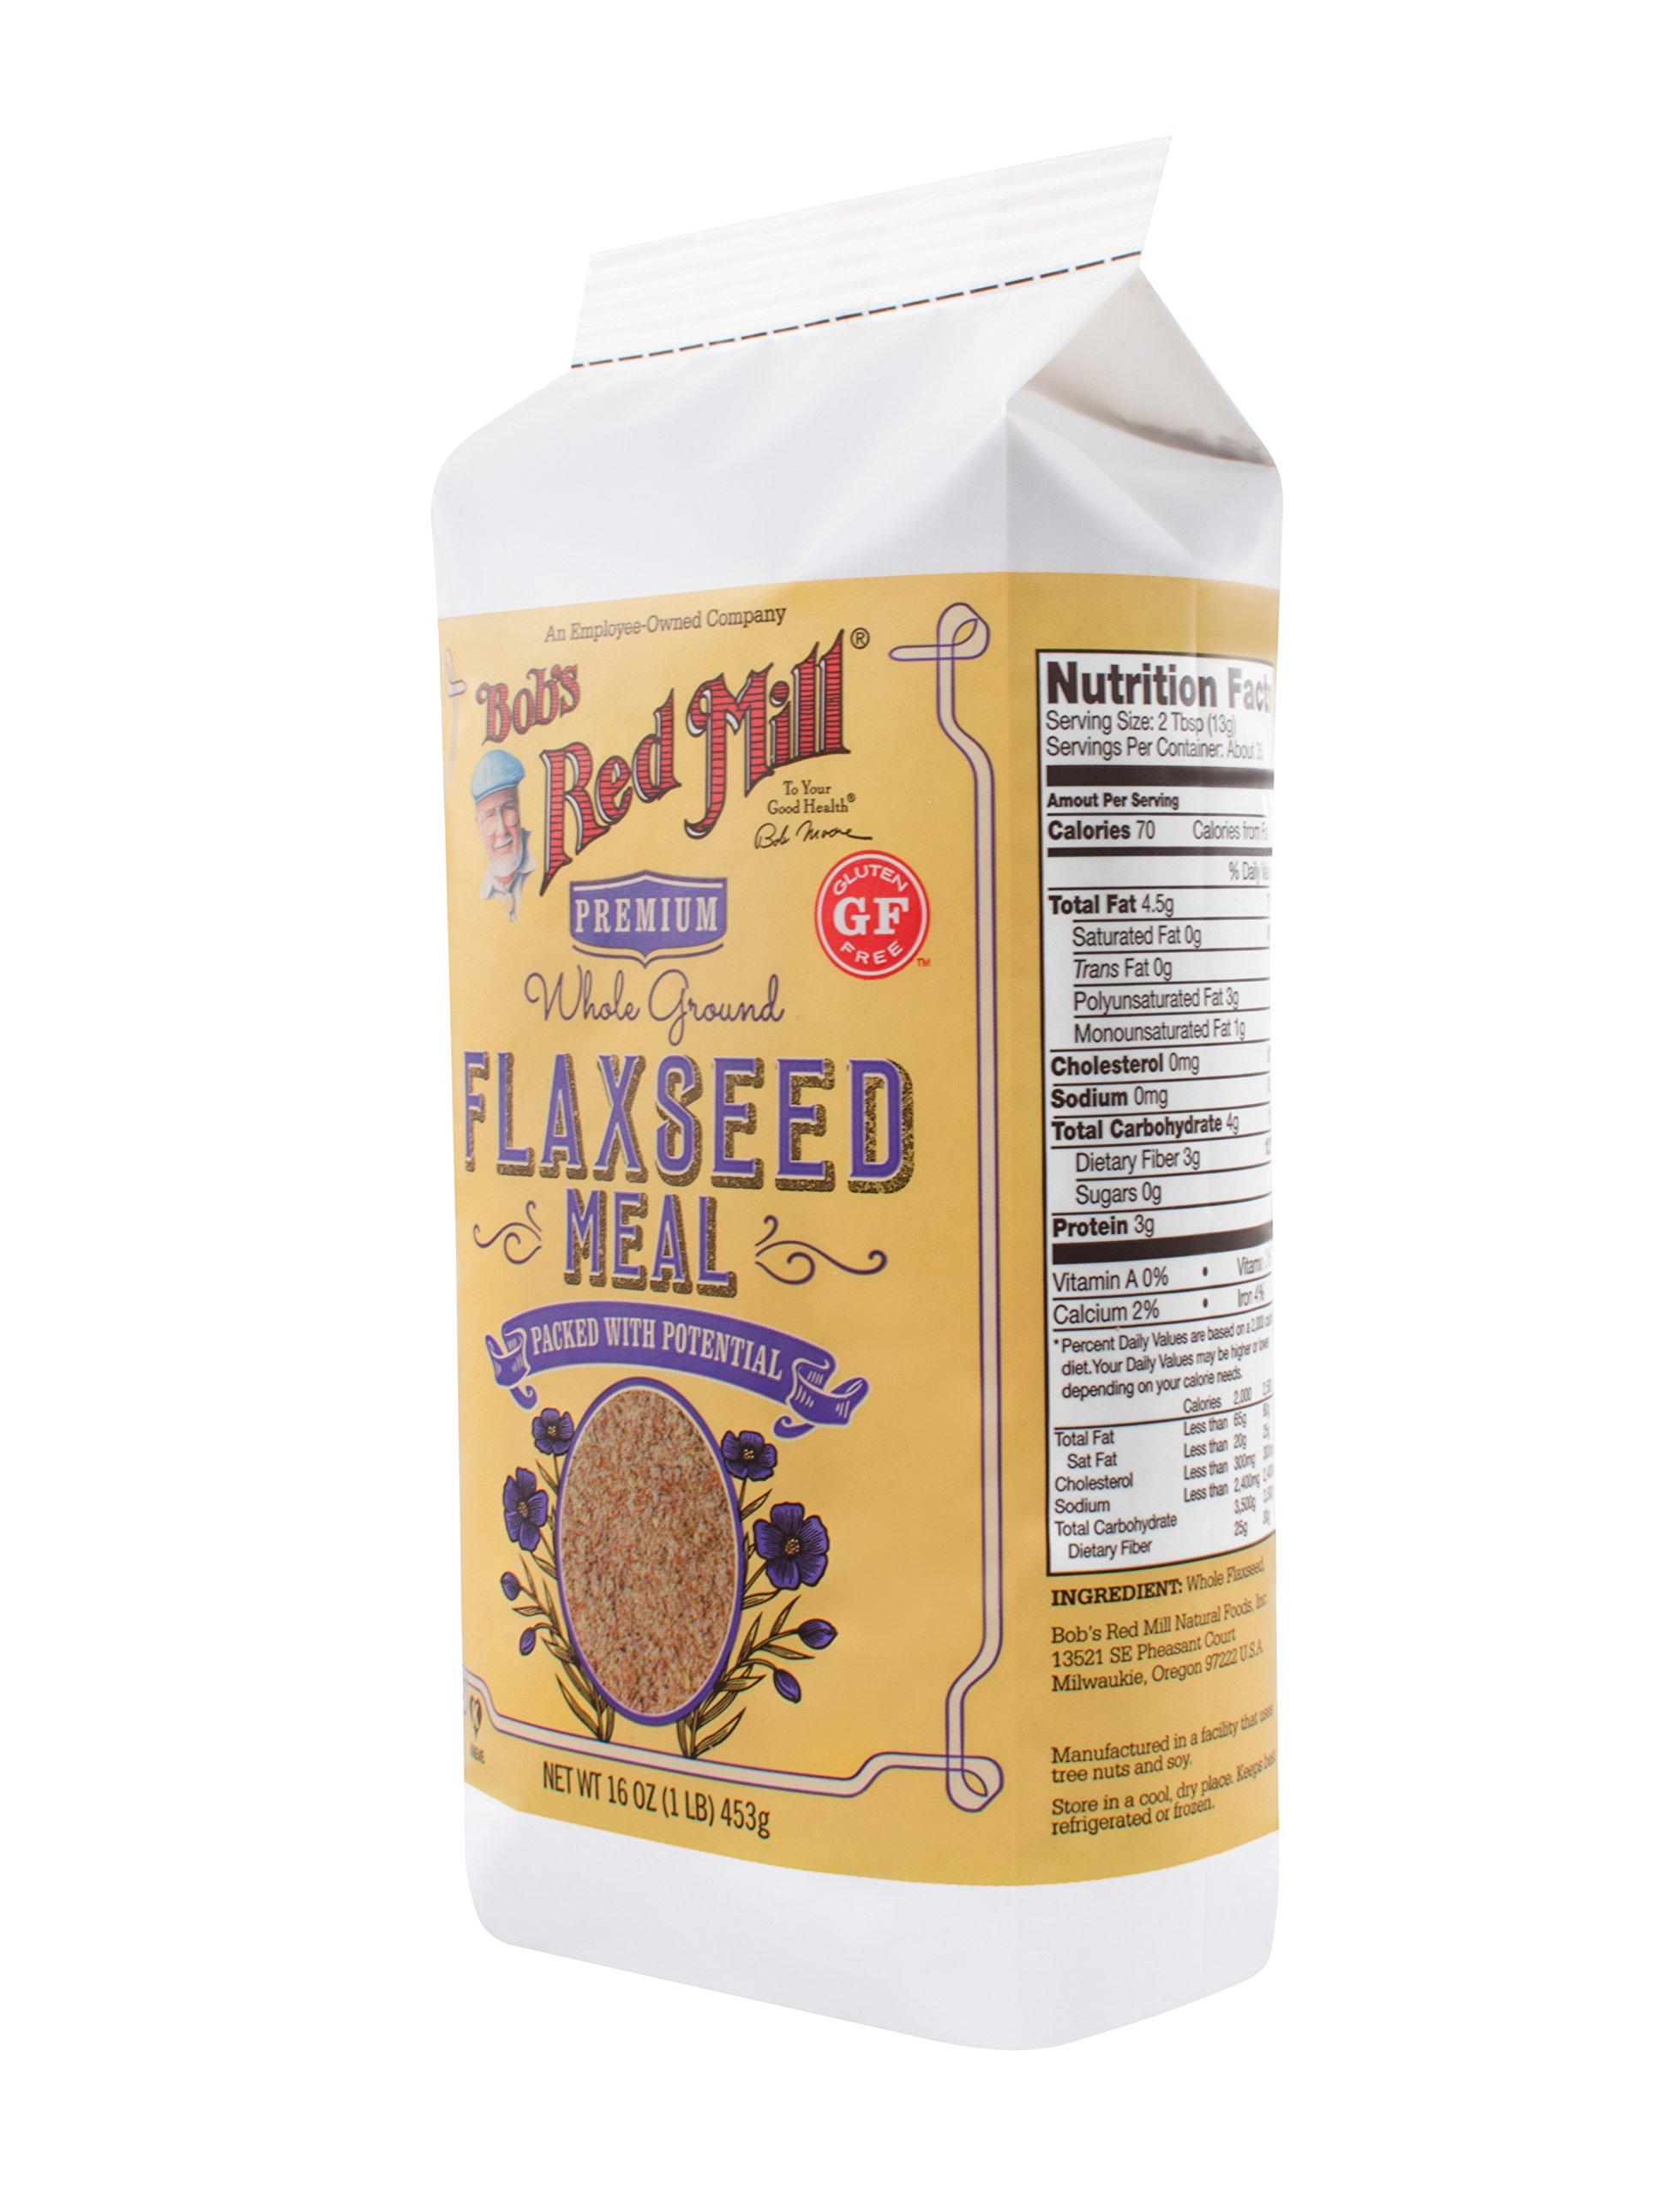 Bob's Red Mill Flaxseed Meal - 16 oz